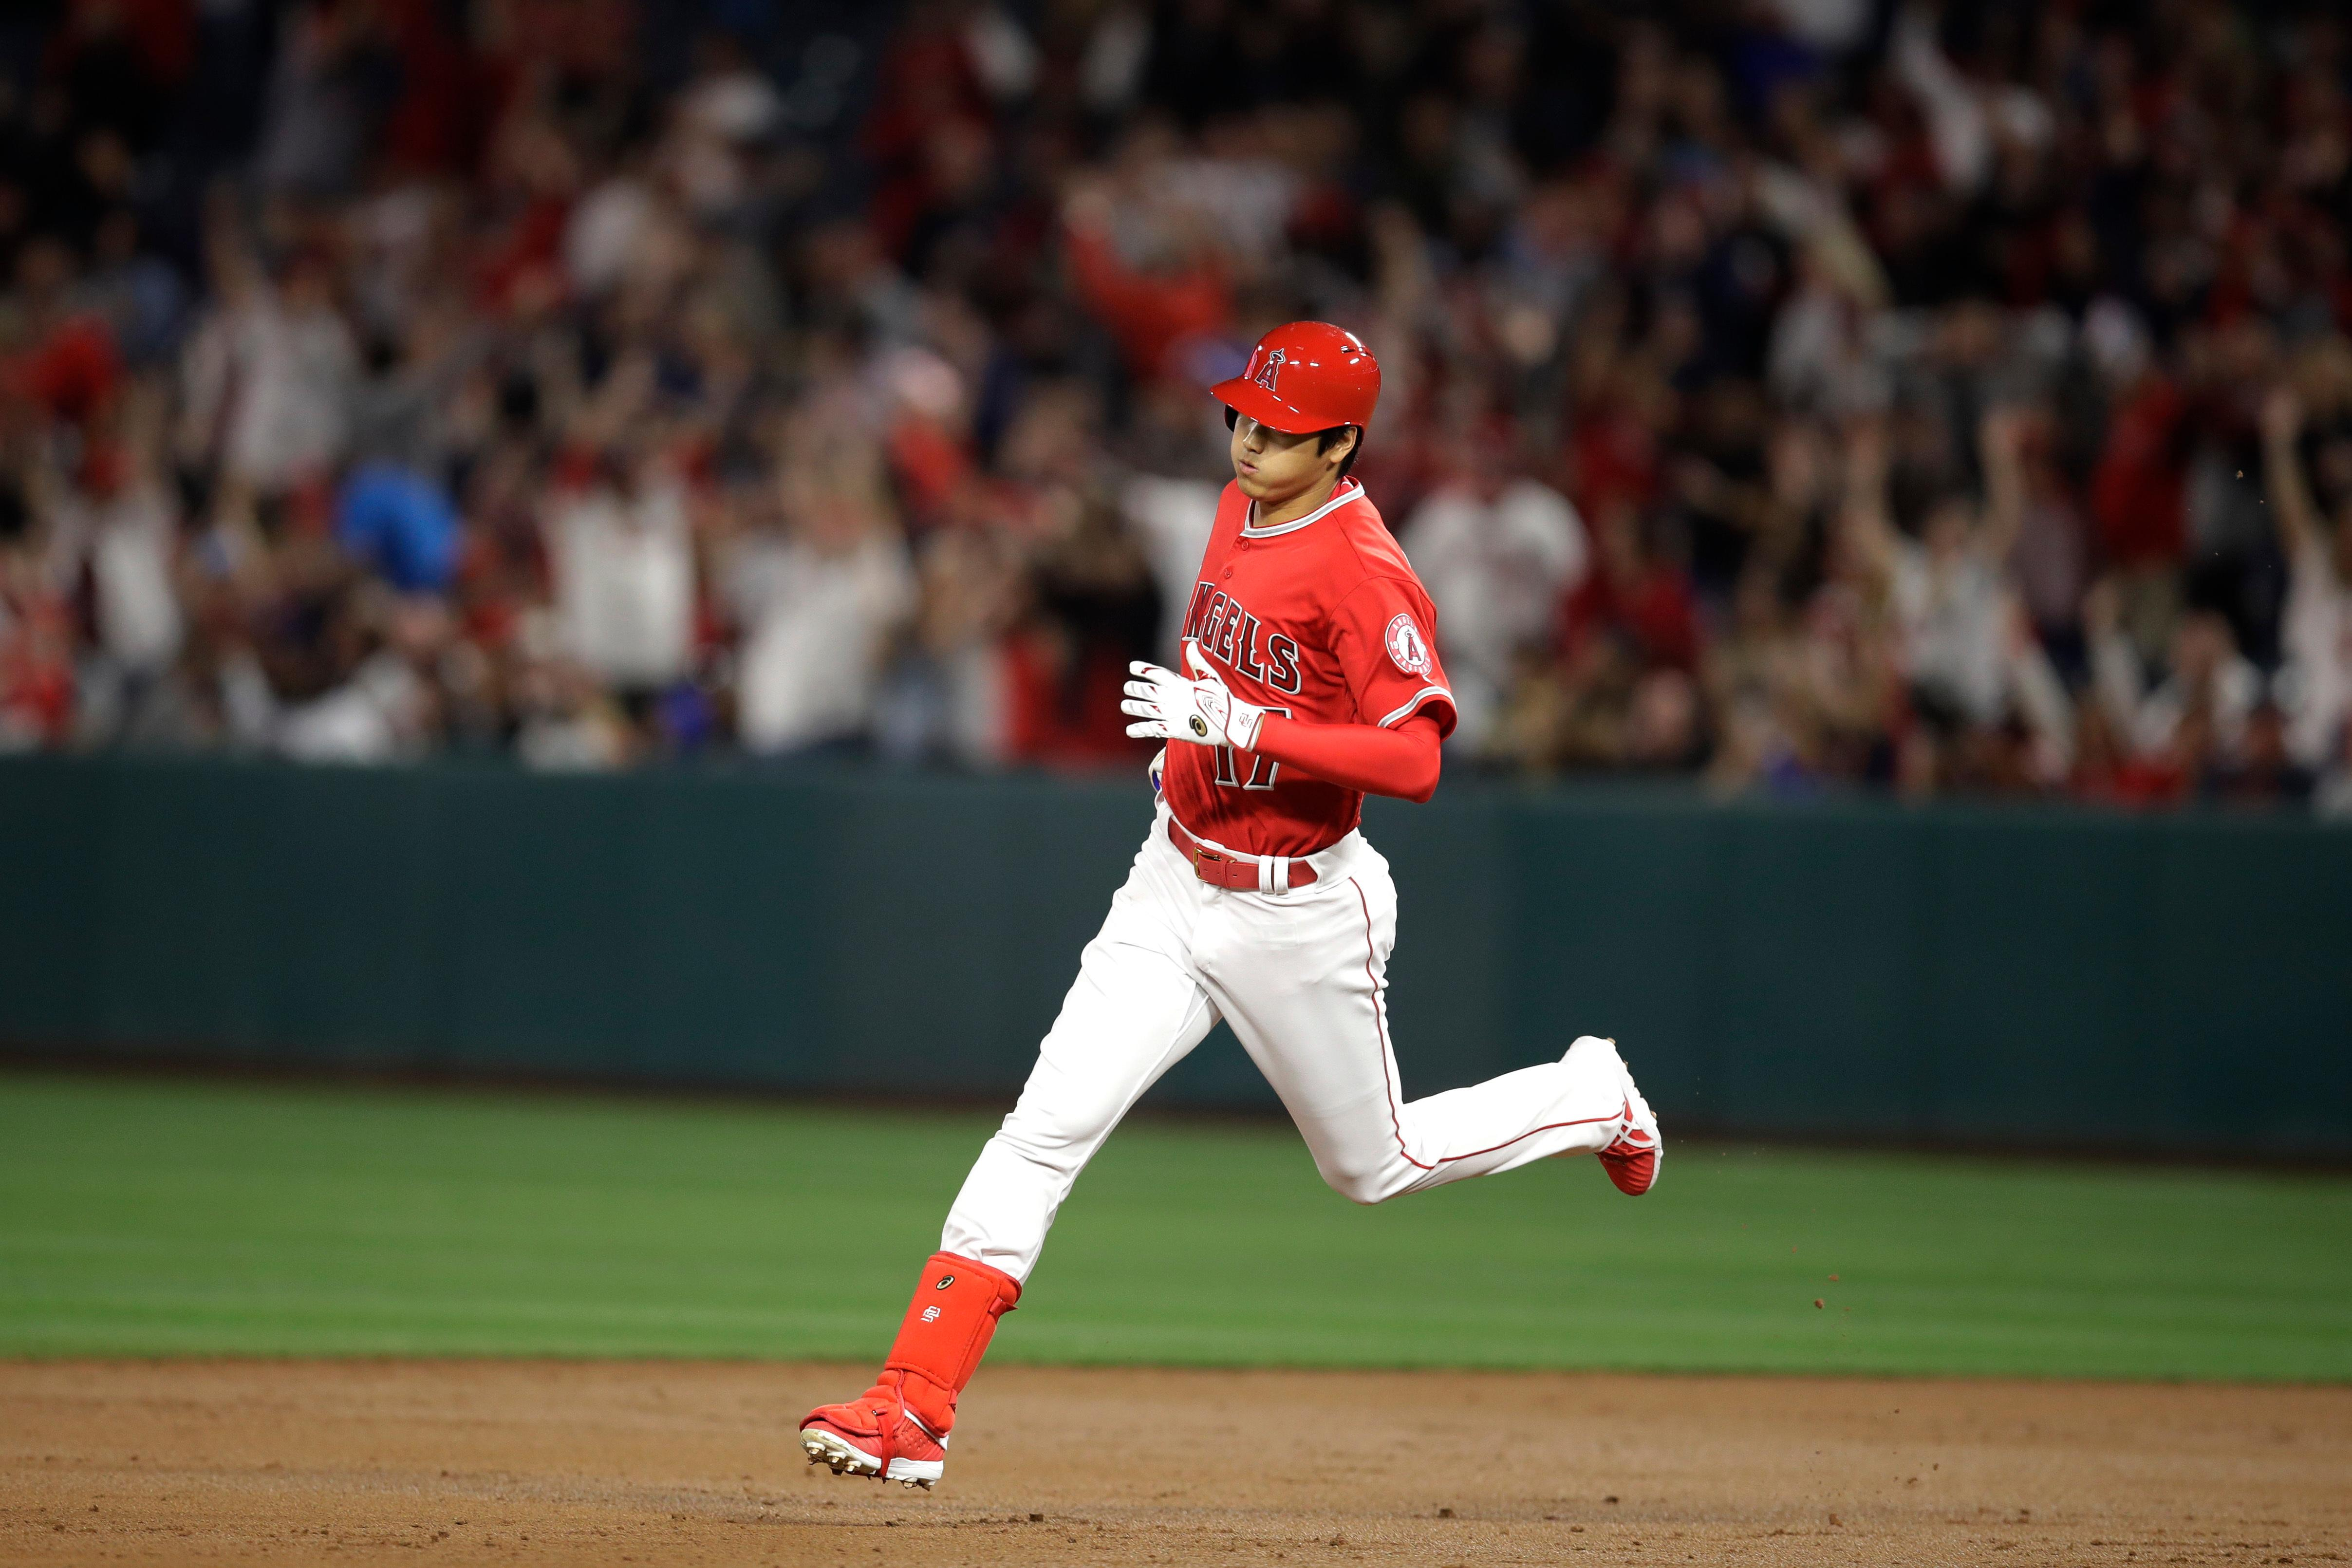 Los Angeles Angels starting pitcher Shohei Ohtani, of Japan, rounds the bases after hitting a three-run home run during the first inning of a baseball game against the Cleveland Indians Tuesday, April 3, 2018, in Anaheim, Calif. (AP Photo/Jae C. Hong)